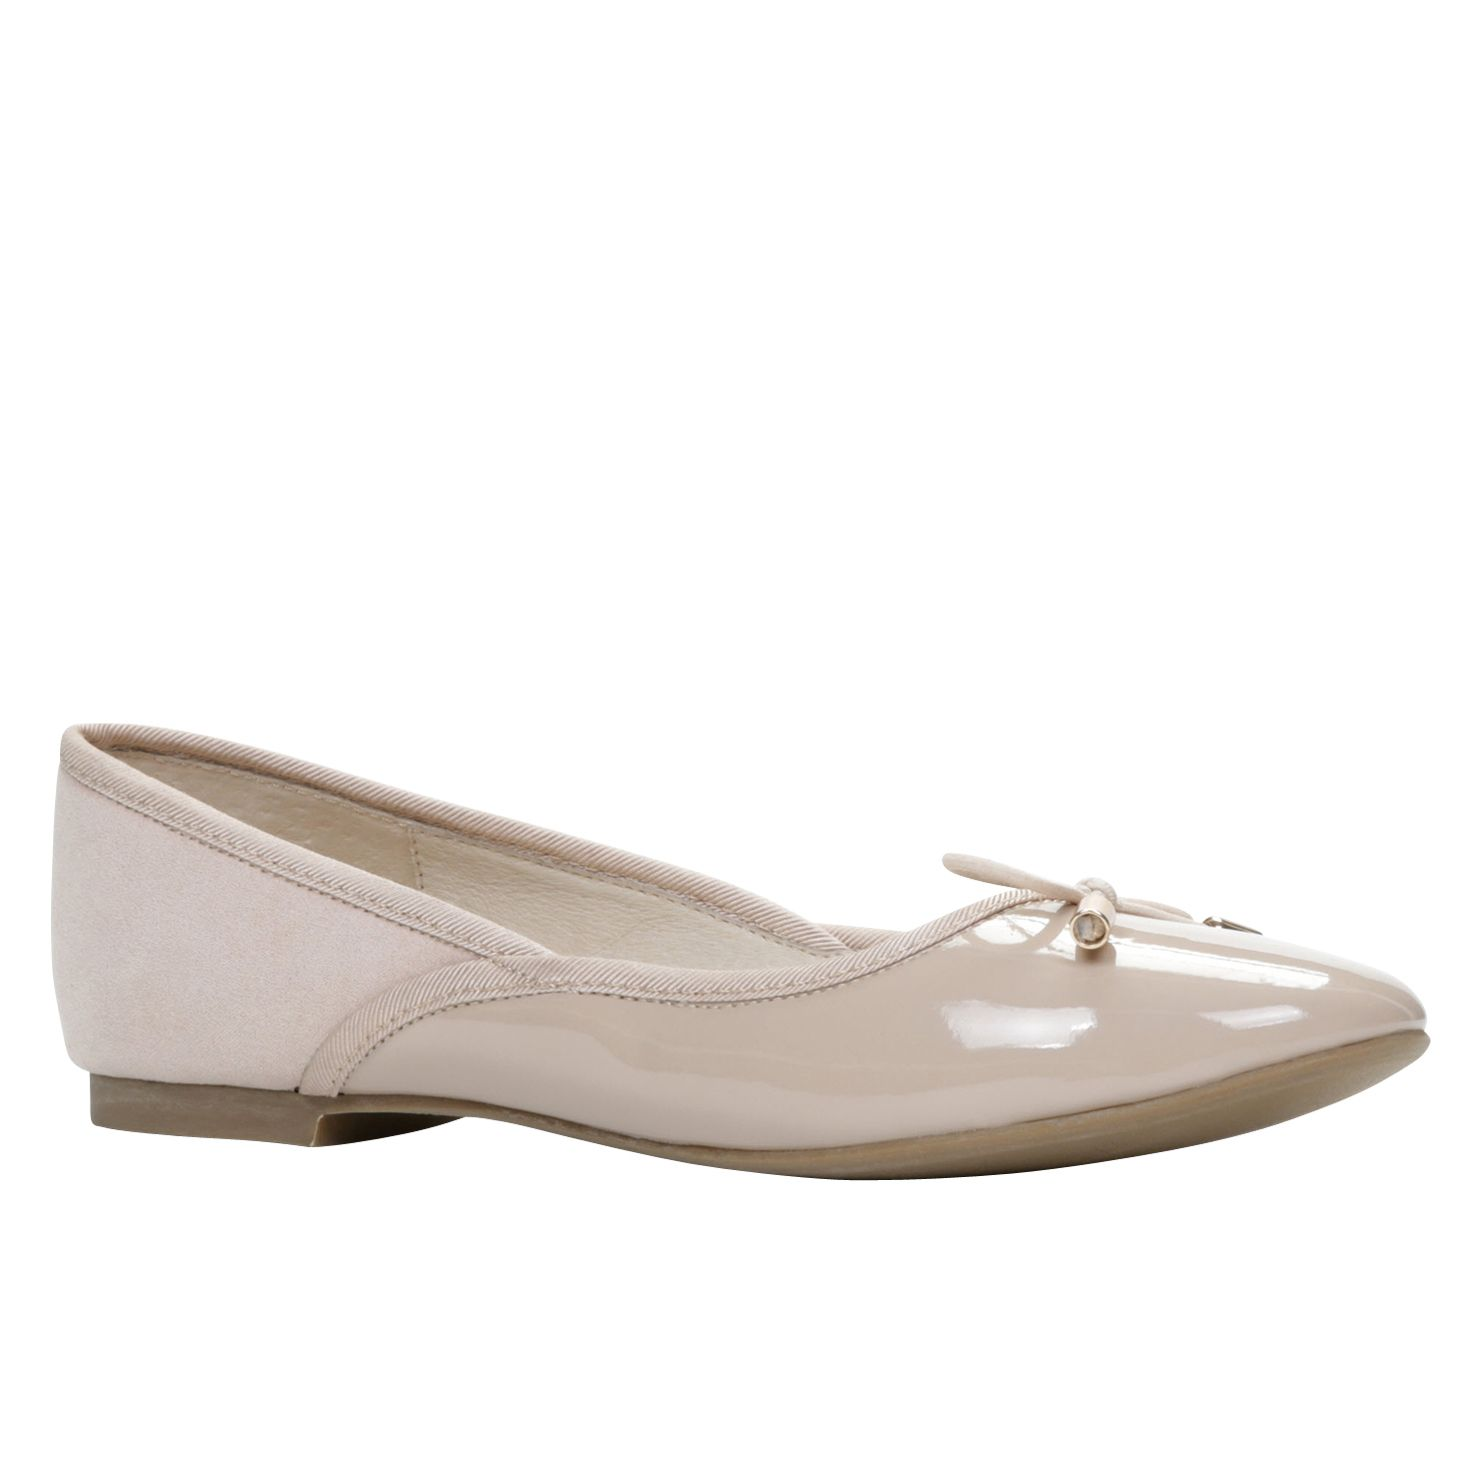 Daigh flatform slip on shoes